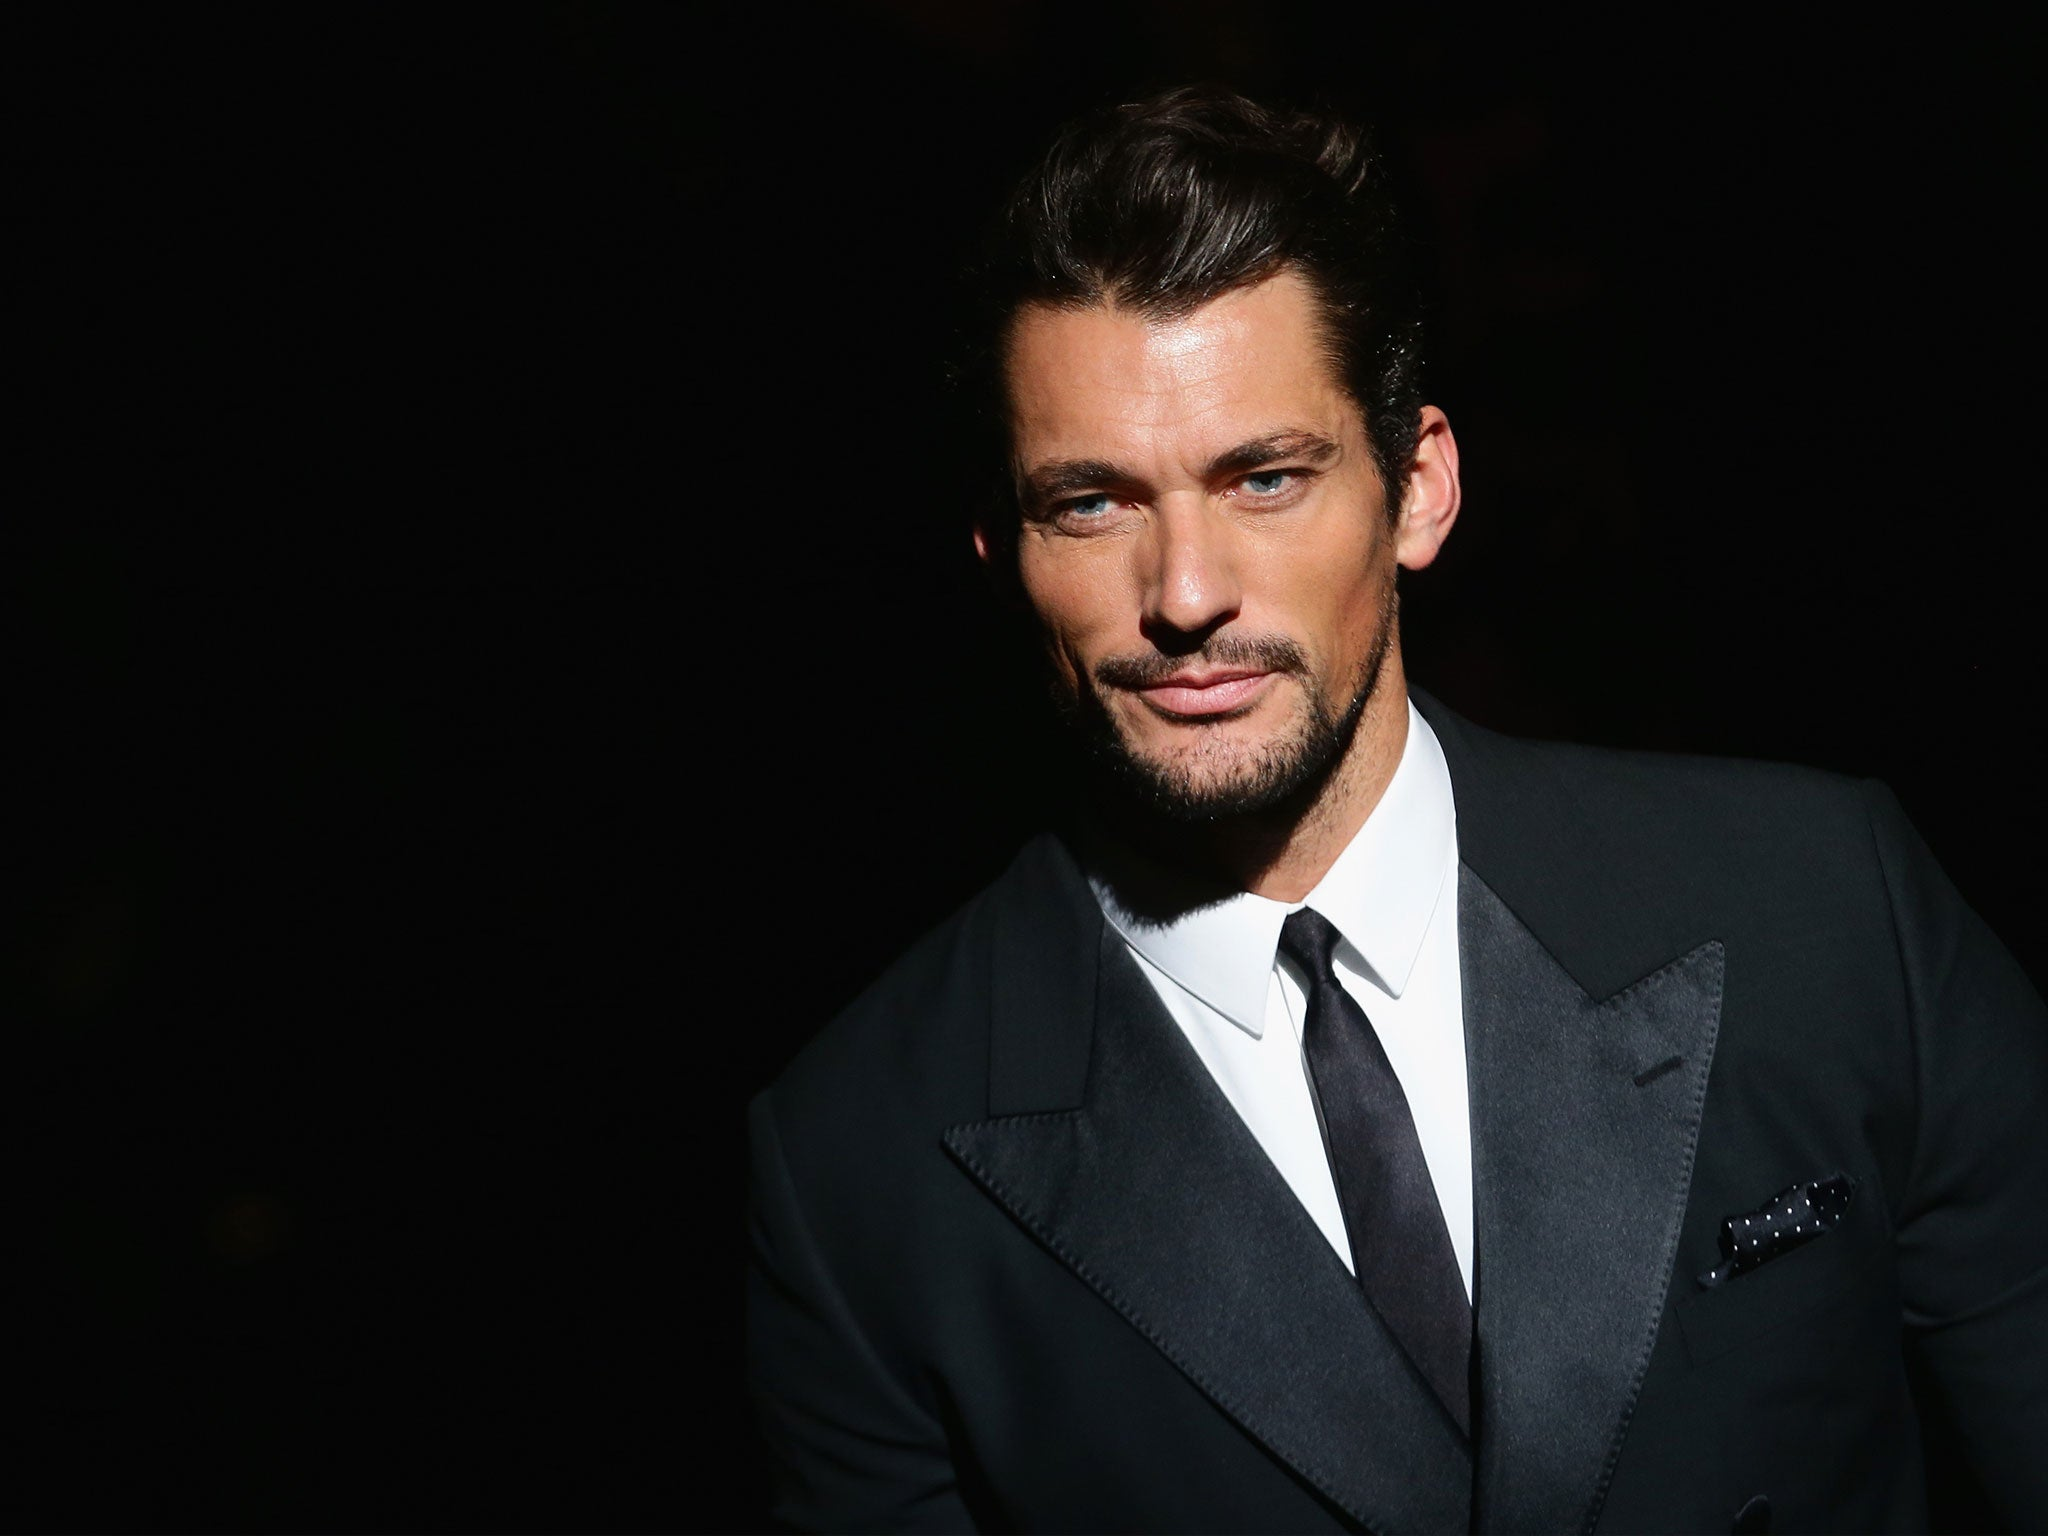 fifty shades of grey movie david gandy reveals why he